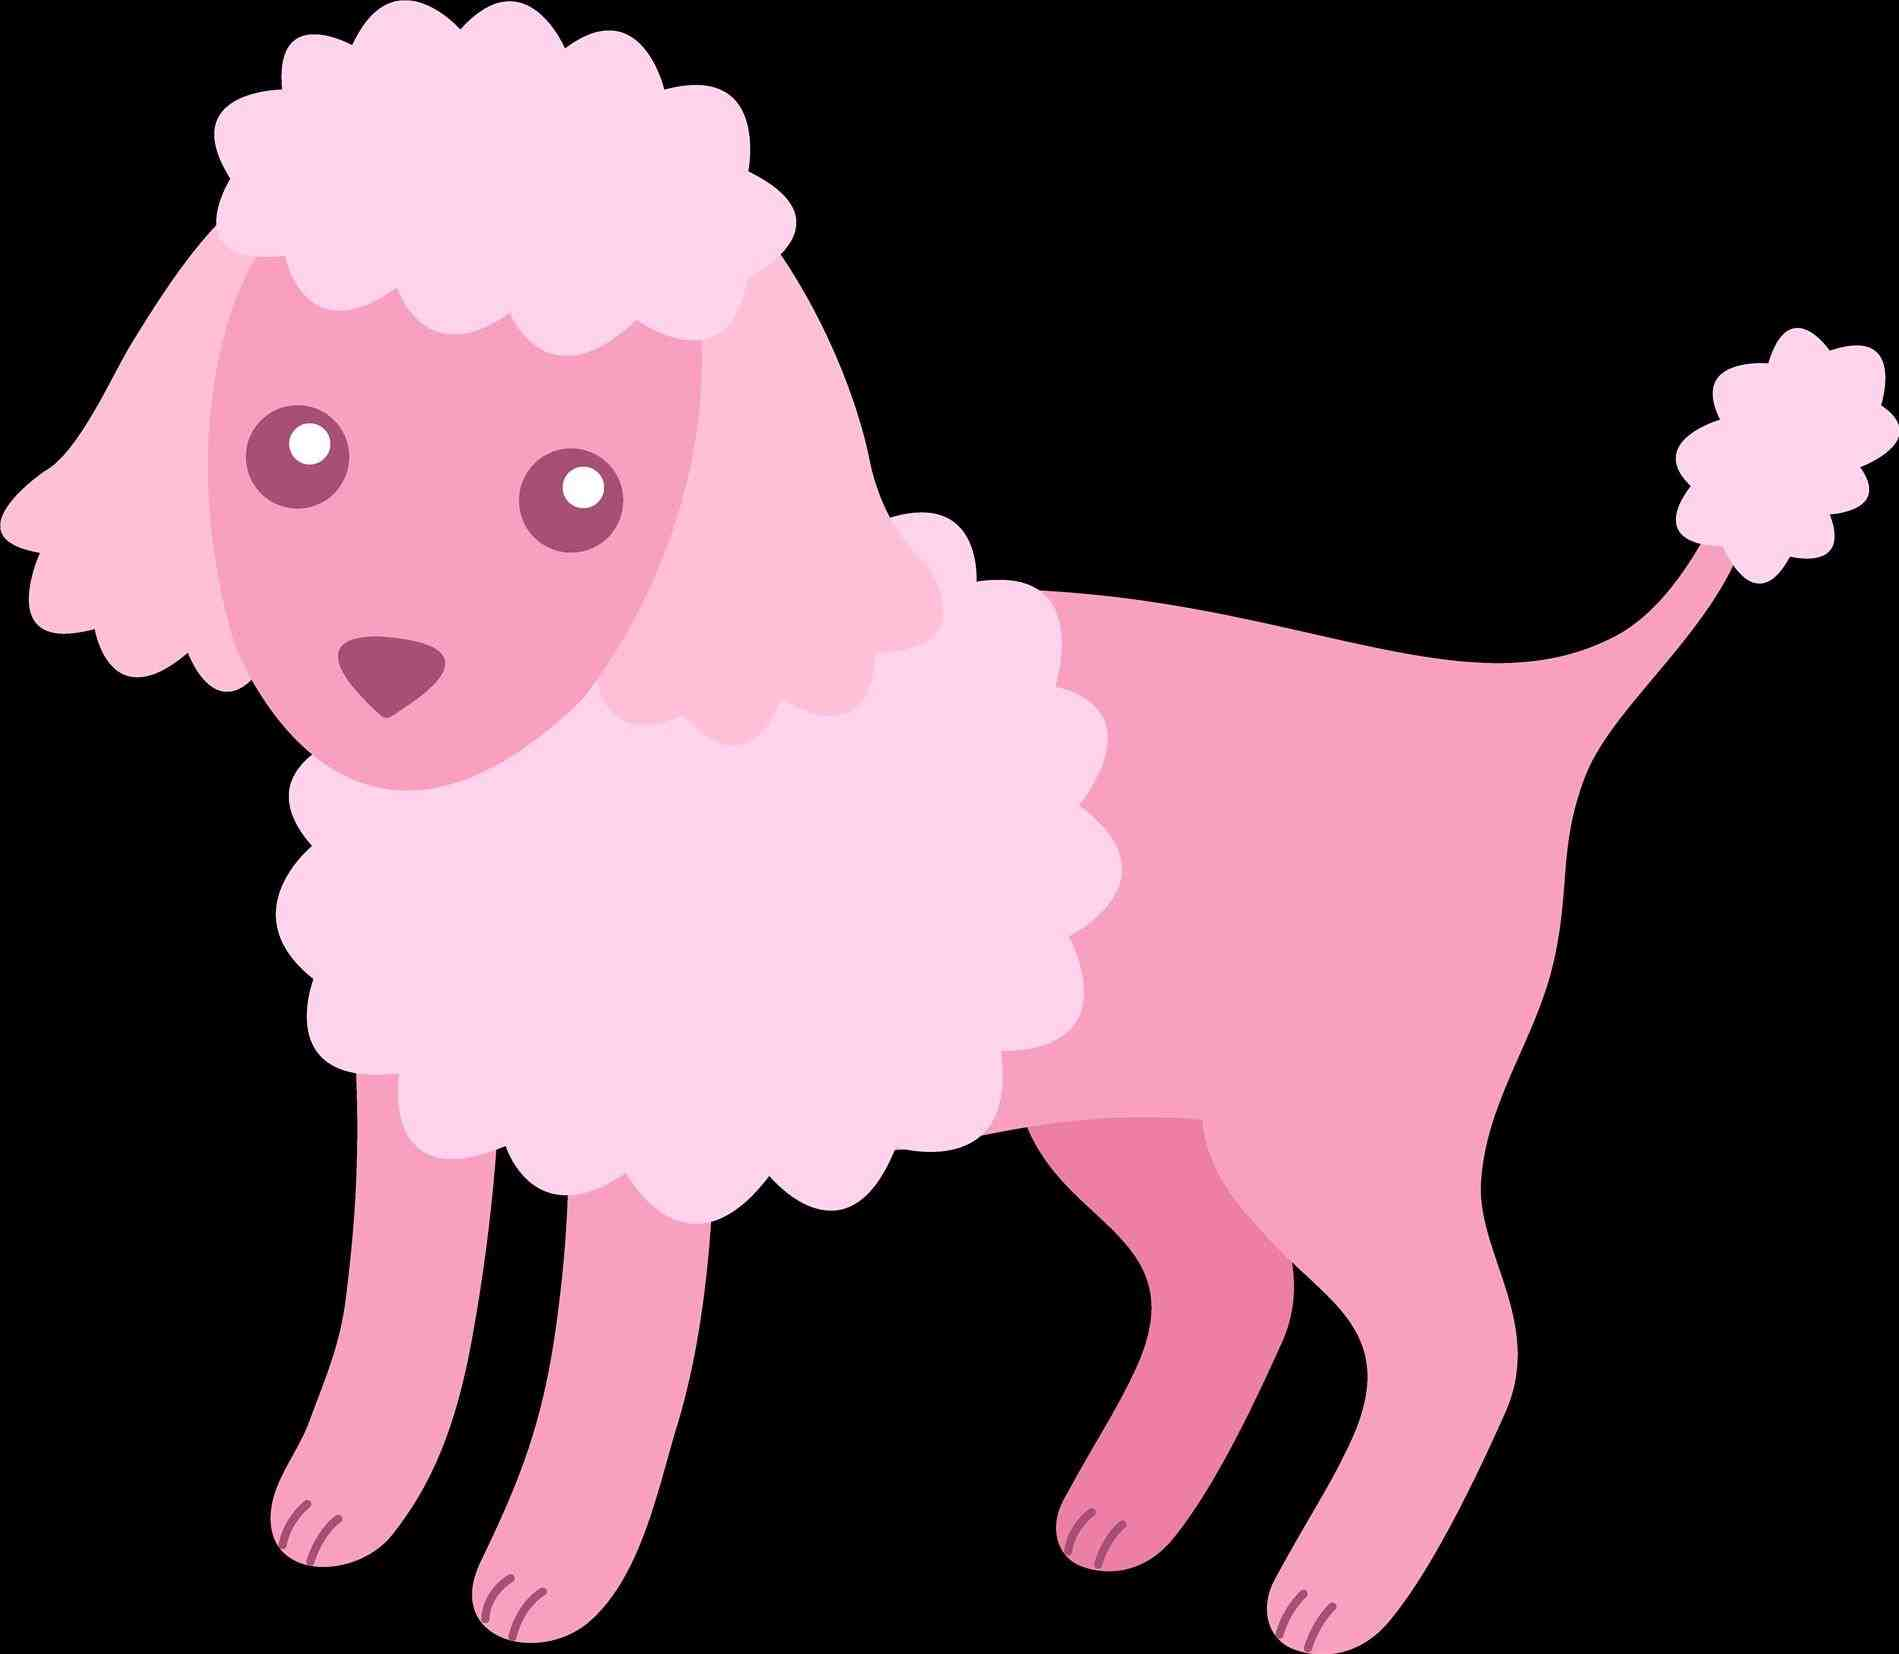 1899x1654 Poodle Clipart Png Animalsee.club